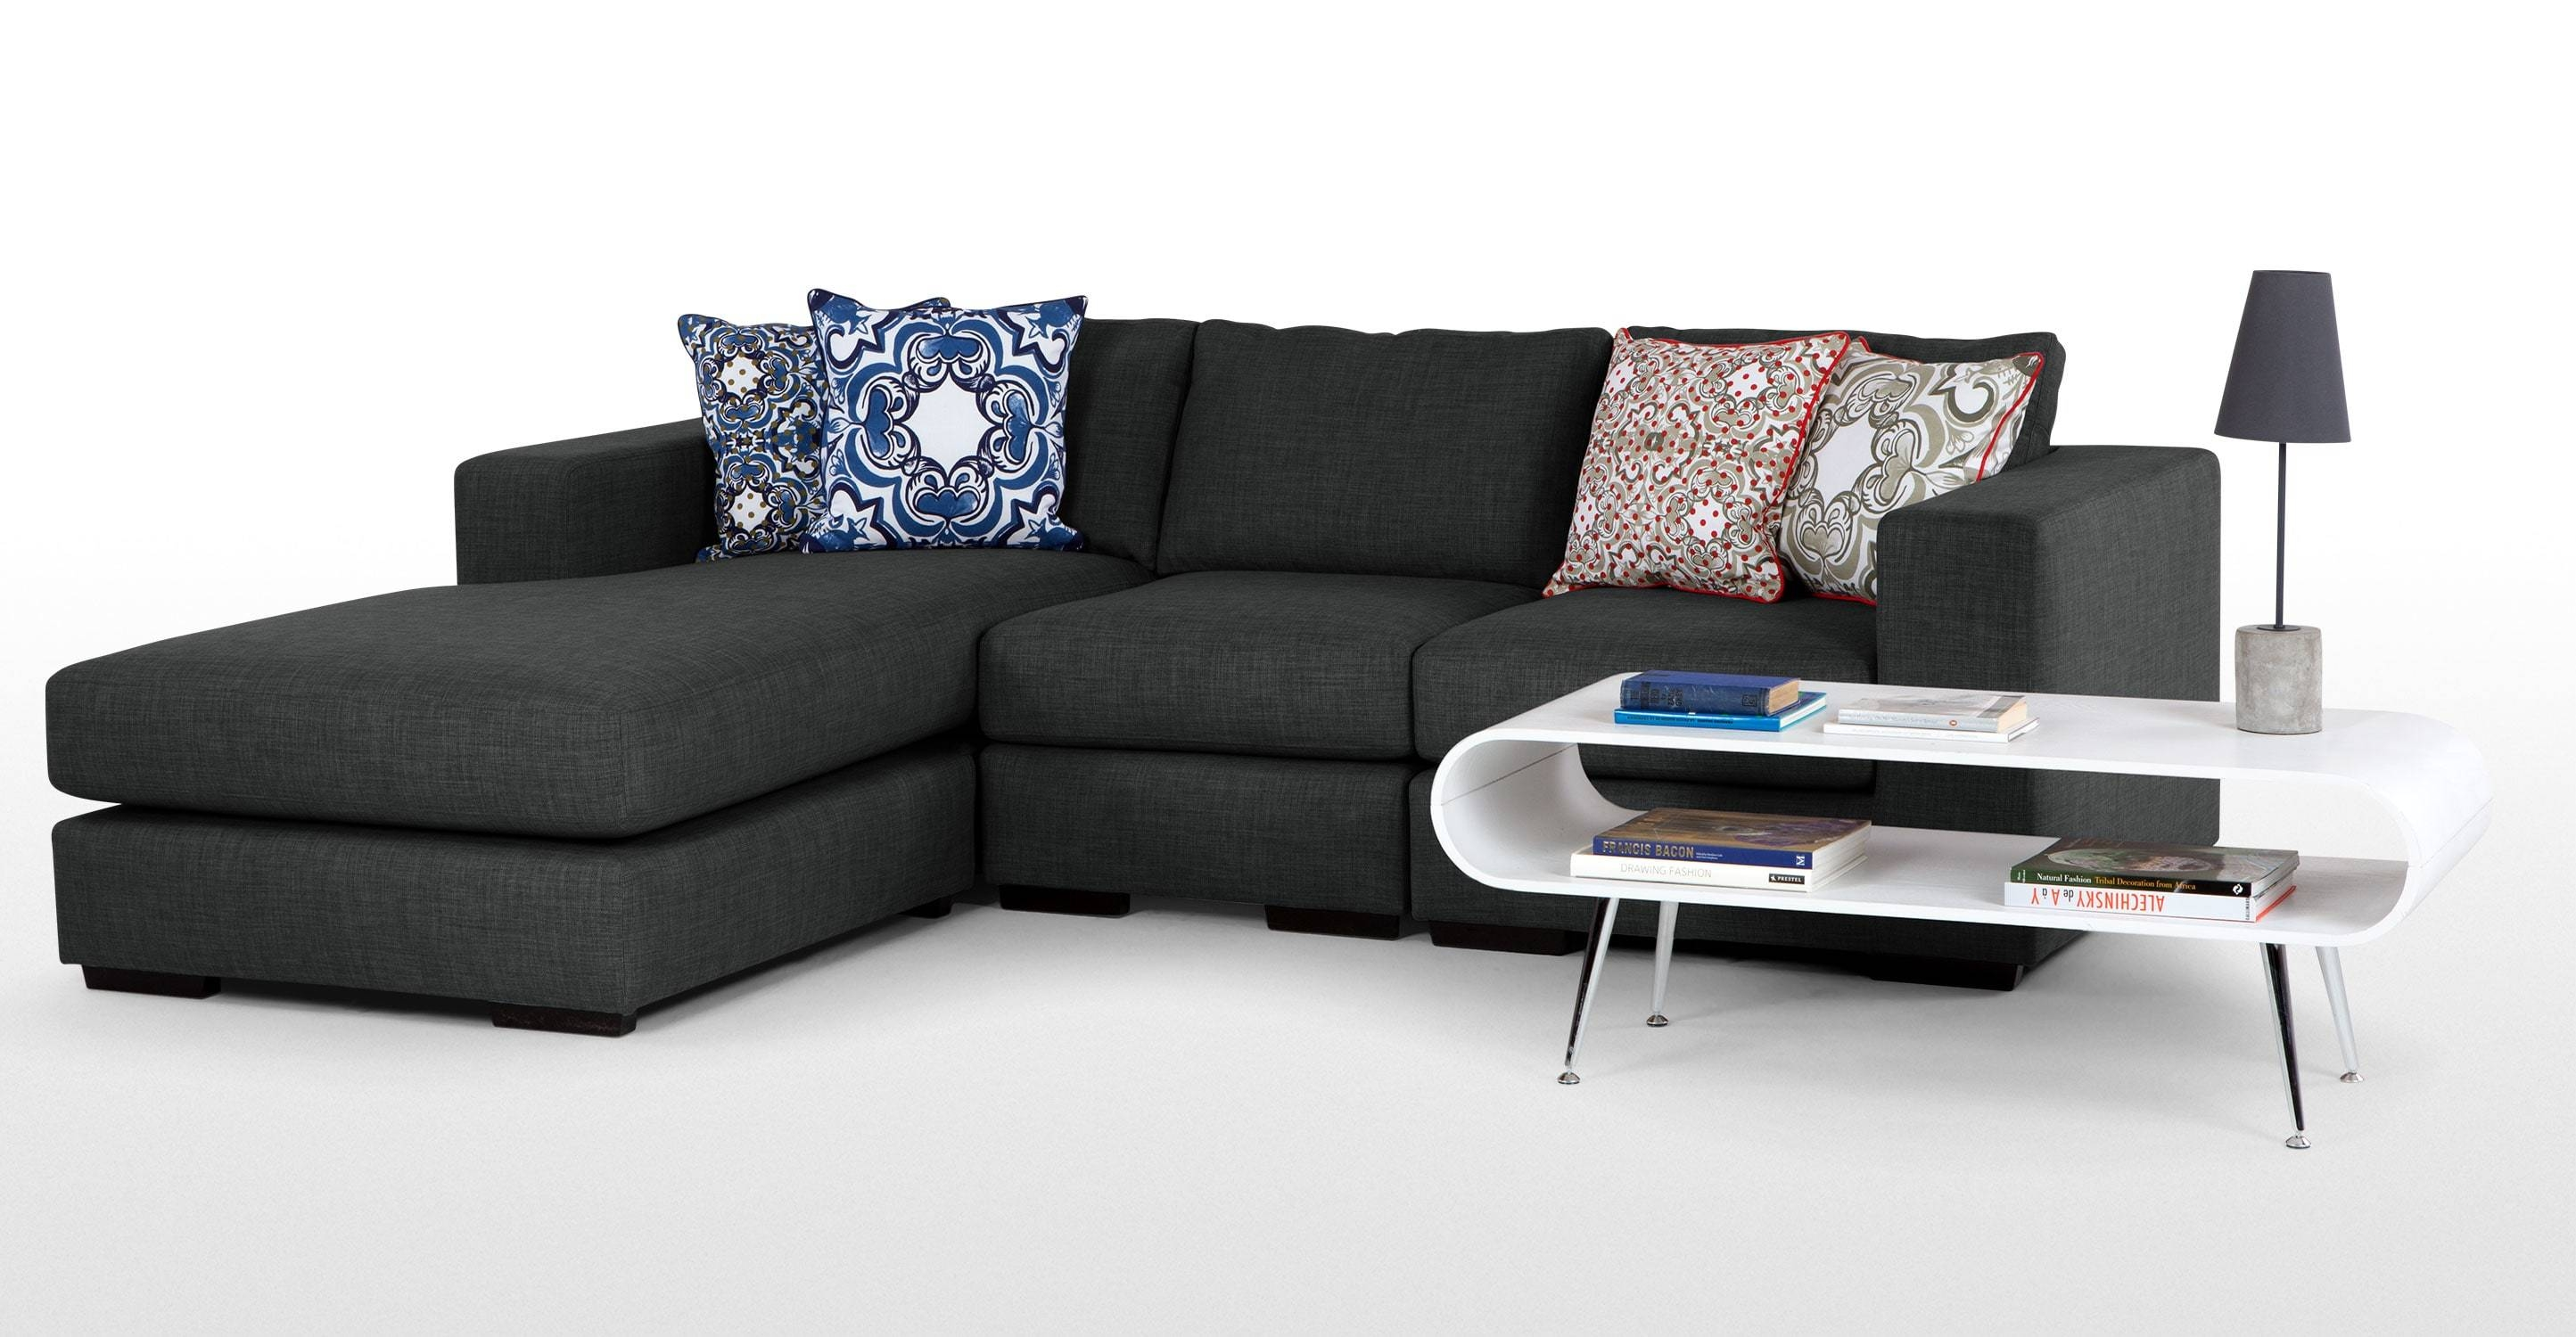 Mortimer 4 Seater Modular Corner Sofa, Shadow Grey | Made inside Modular Corner Sofas (Image 27 of 30)